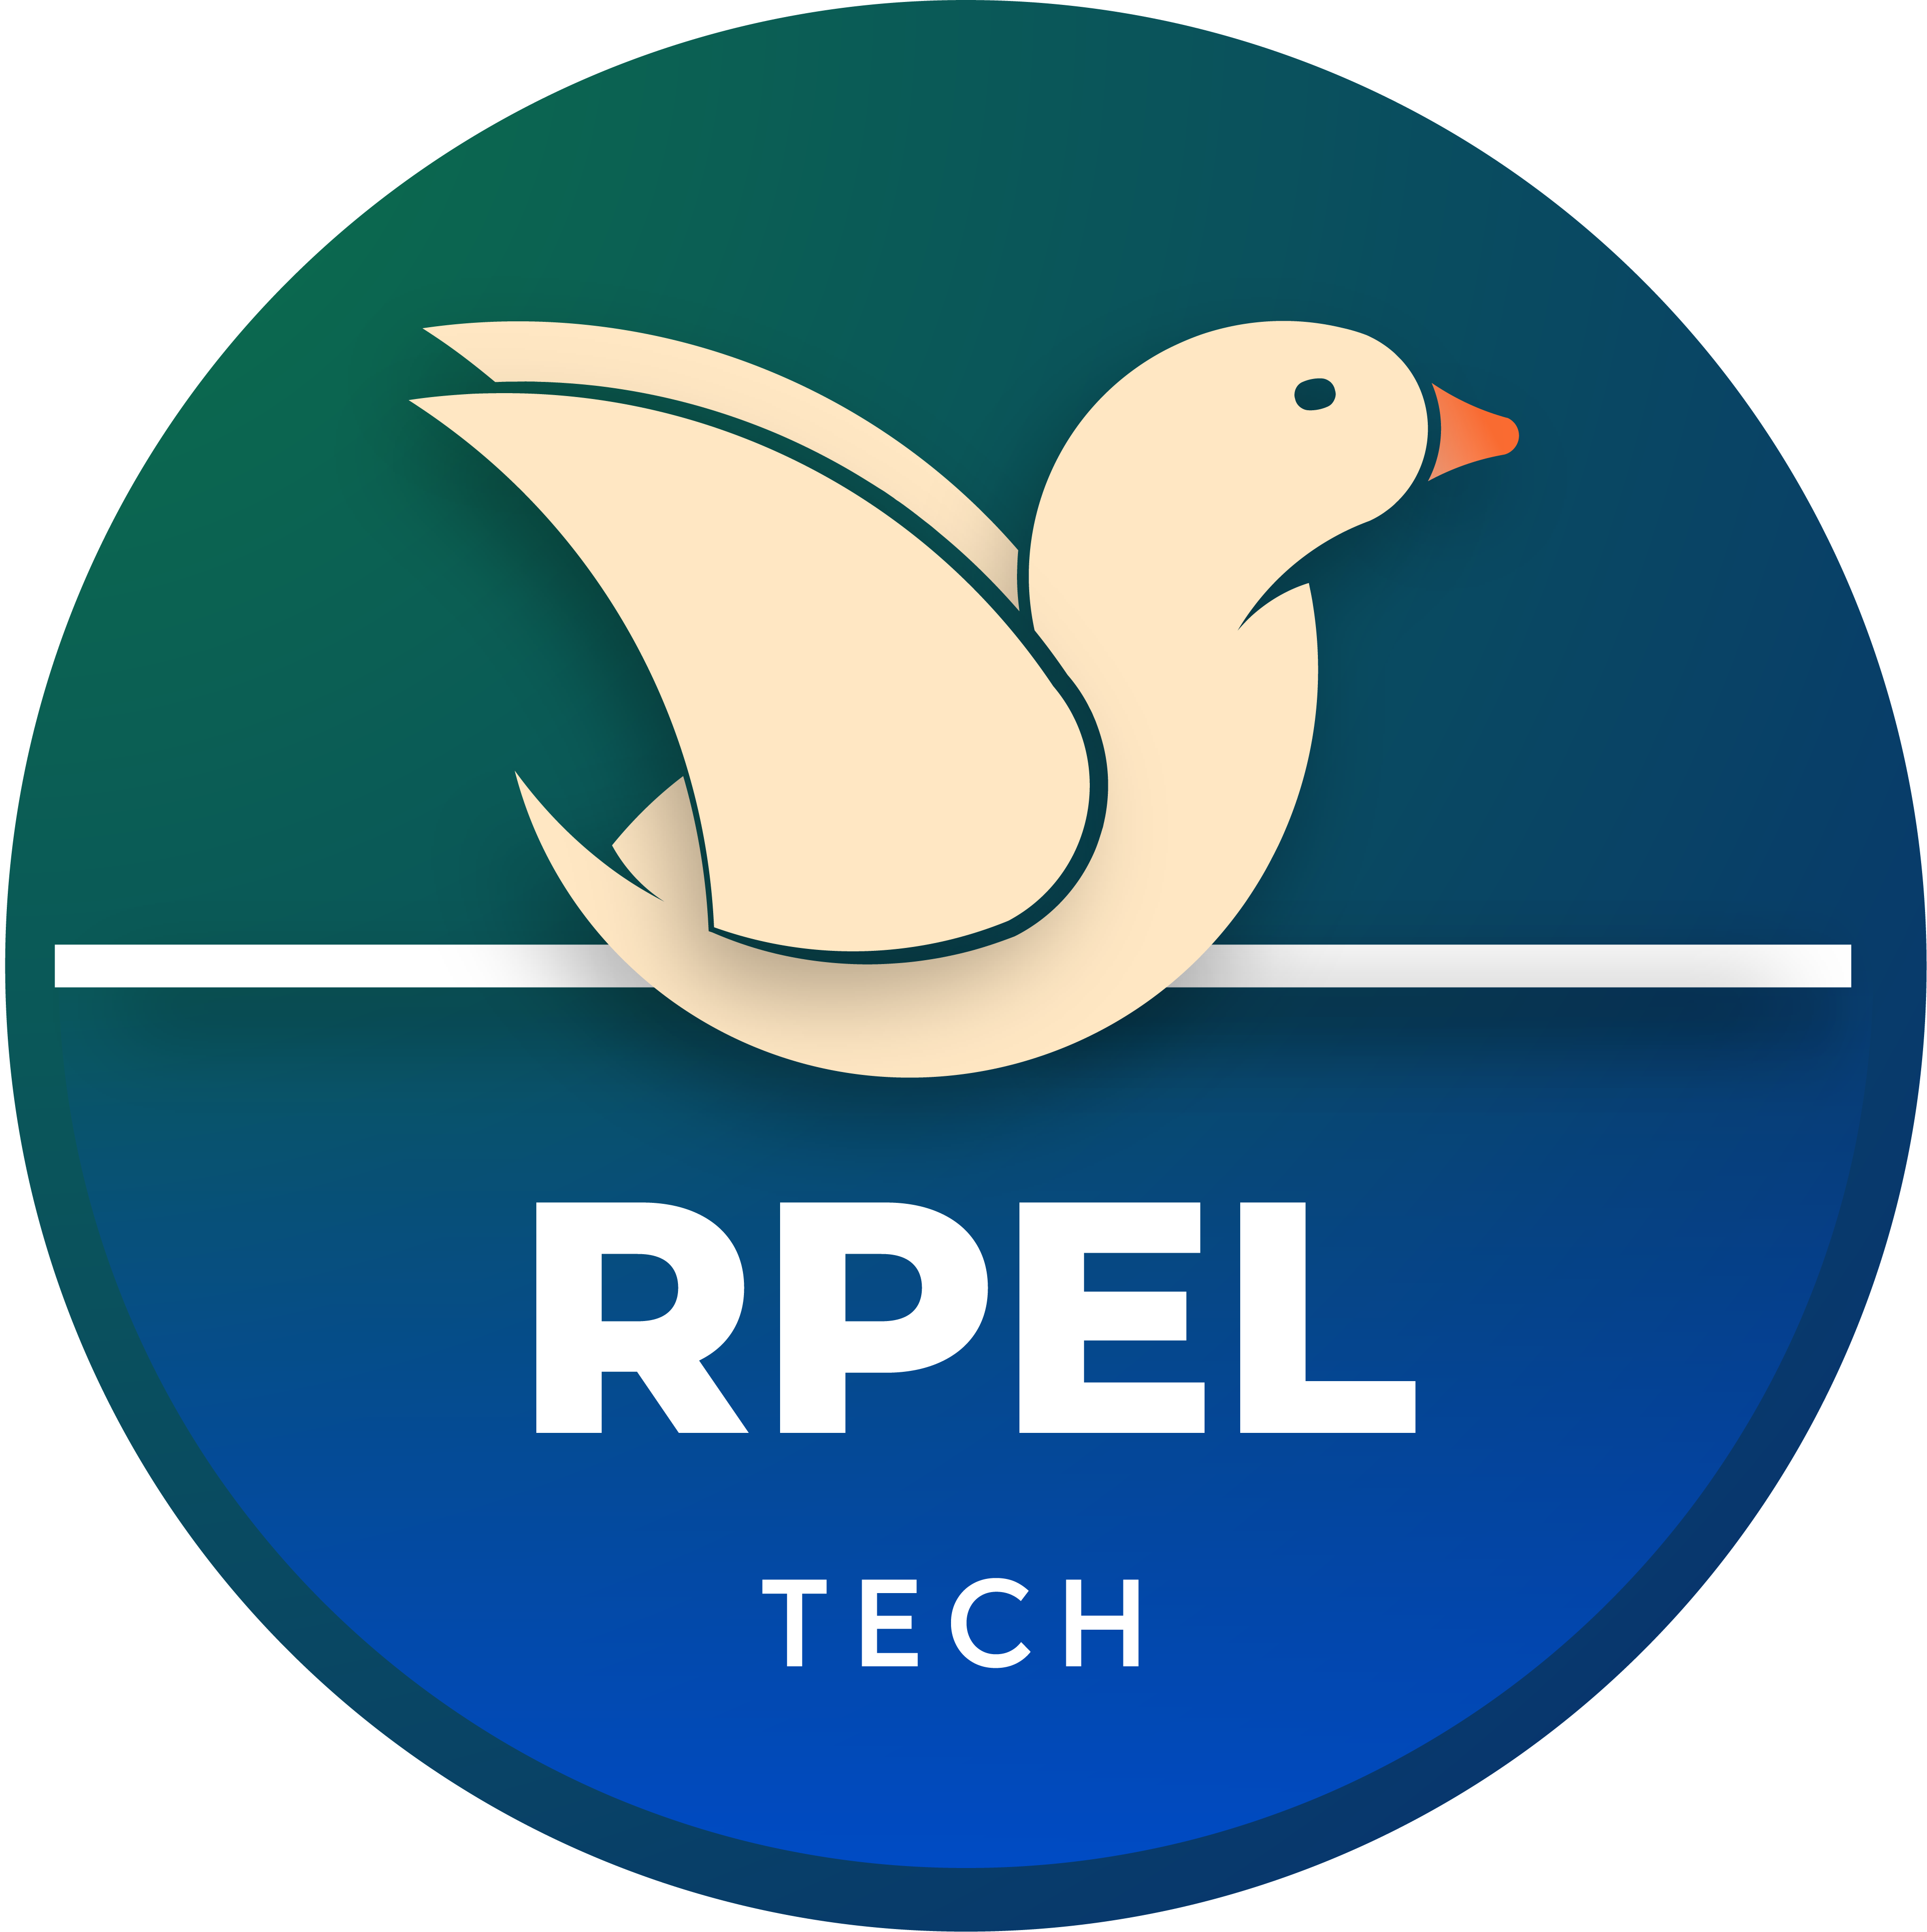 Circular logo of the tech branche of the RPEL GmbH (beige drake with orange beak and blue fadeout)